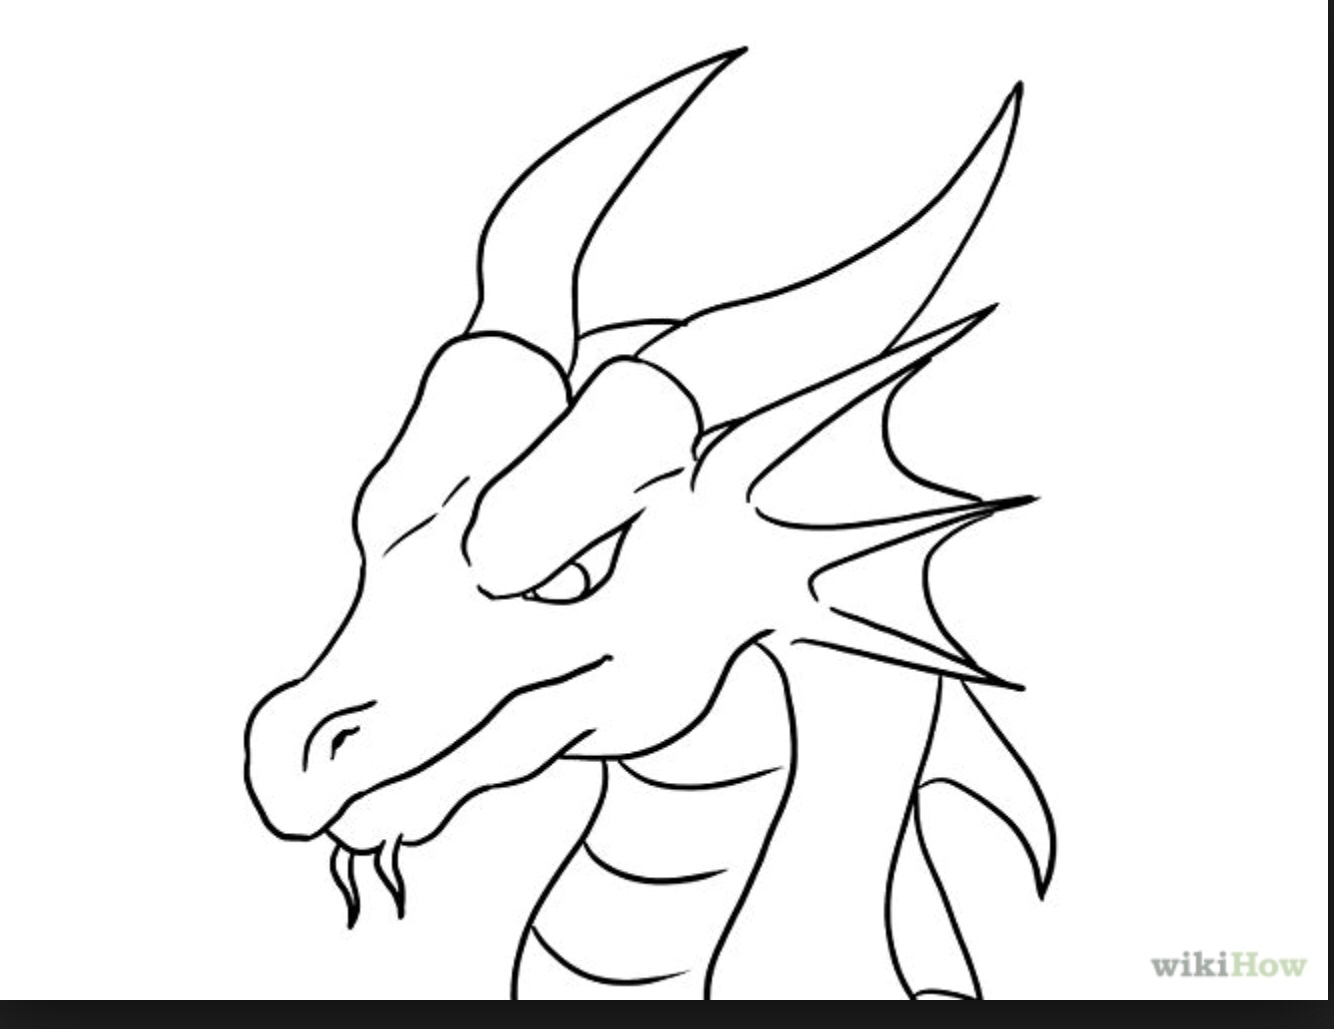 1334x1029 Coloring Pages Simple Dragons To Draw Drawing For Kids Art